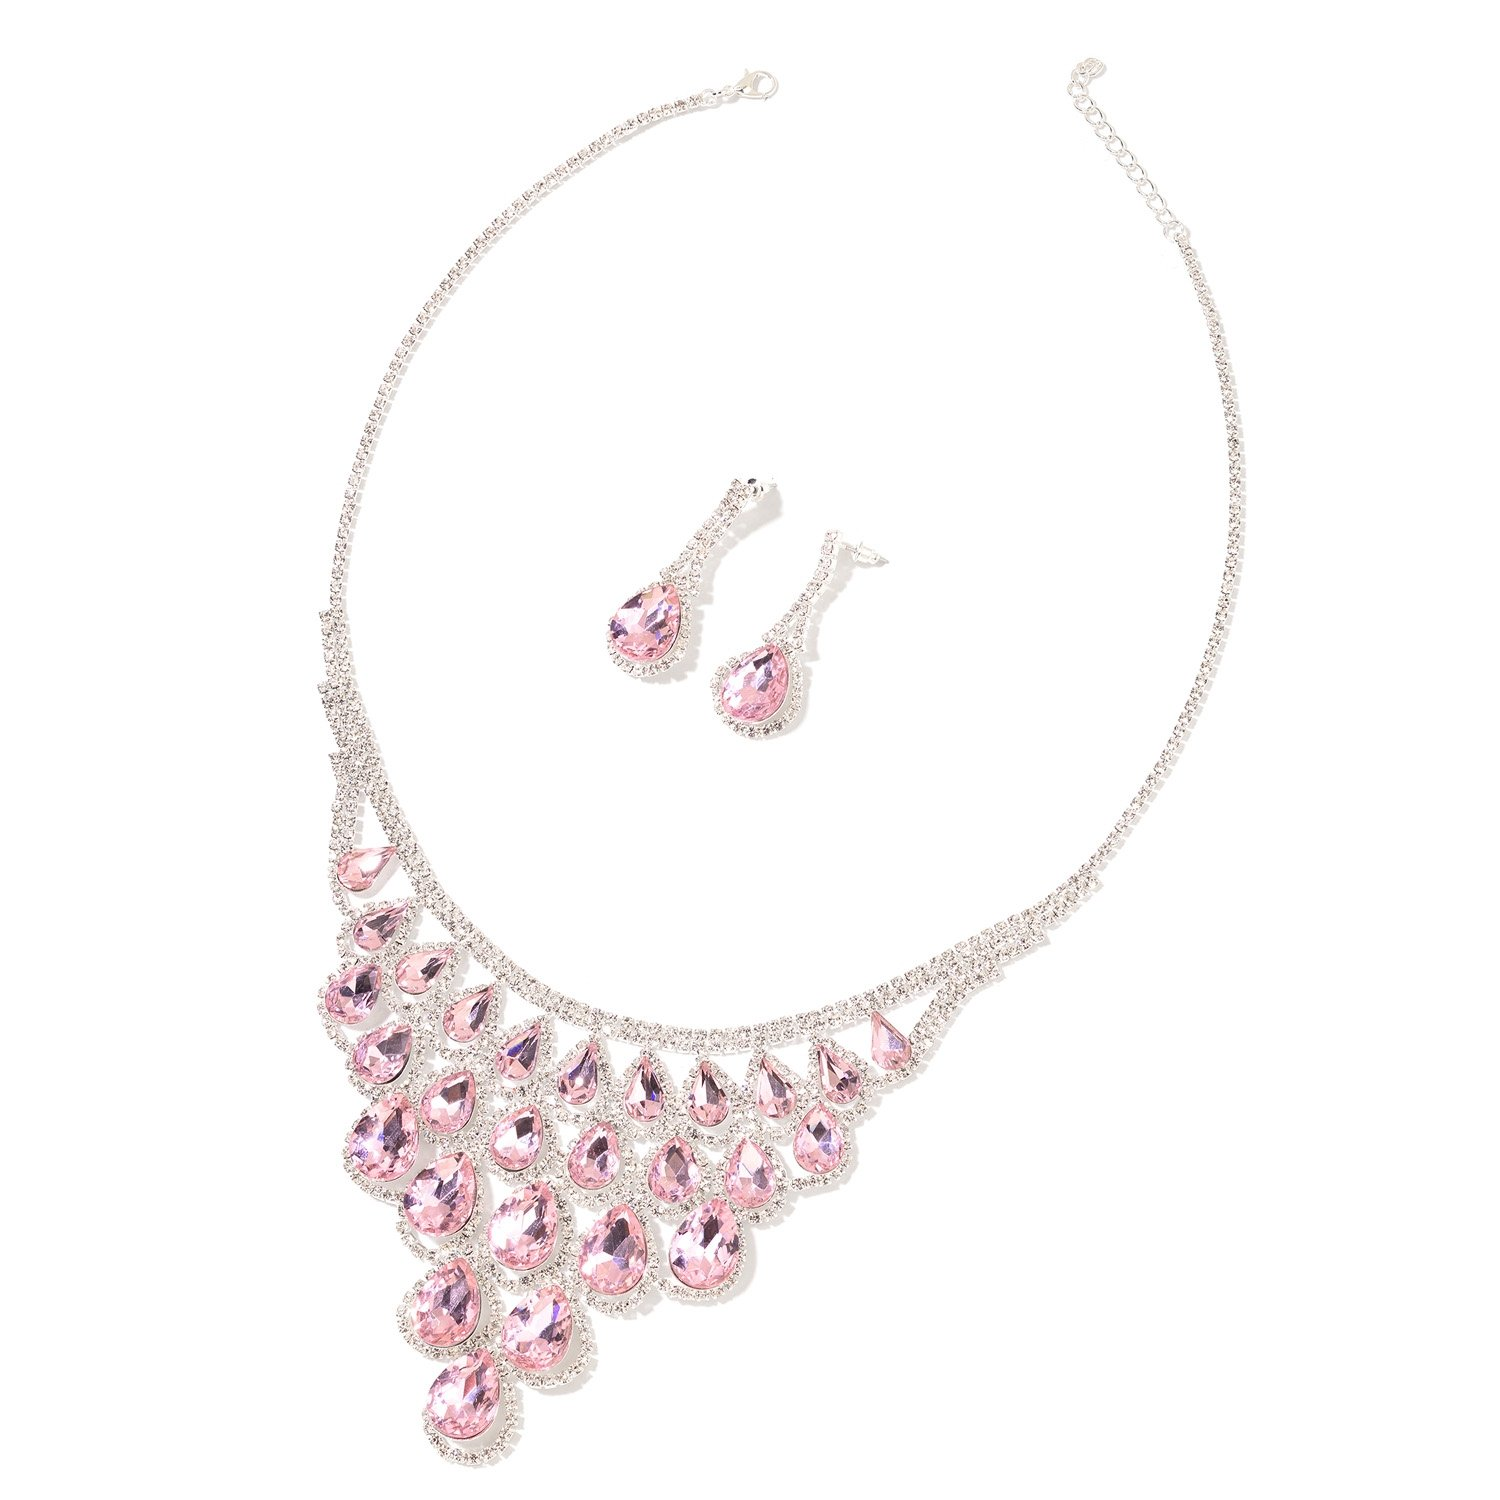 Pink Glass, White Crystal Silvertone Drop Earrings and Bib Necklace Jewelry Set for Women 18-20''